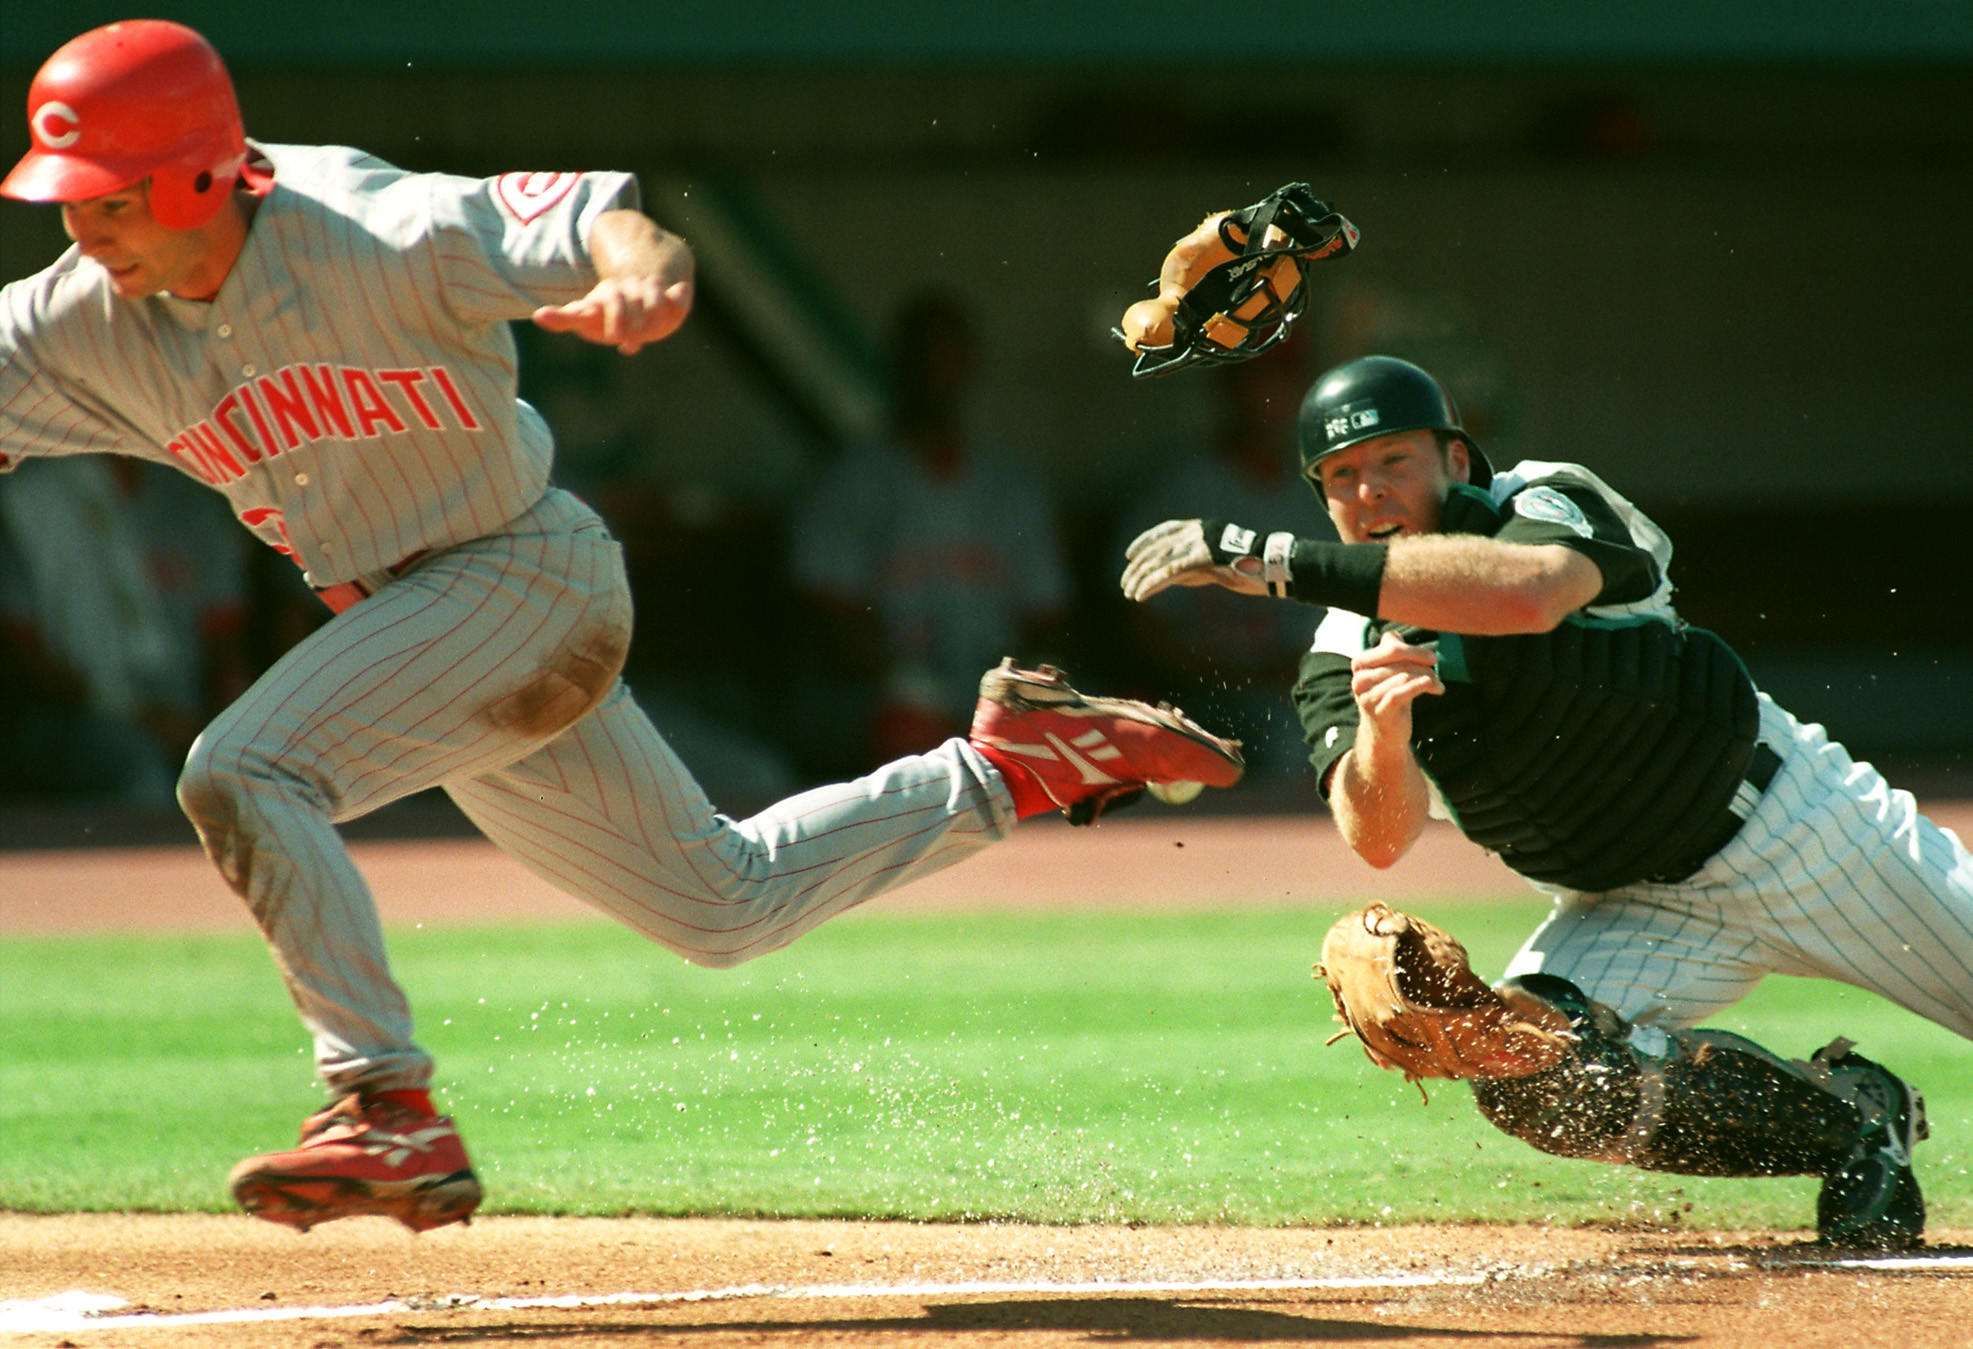 Plays like this one in 1998 involving ex-catcher and Marlins' manager Mike Redmond, and Chris Stynes of the Reds will be a thing of the past.